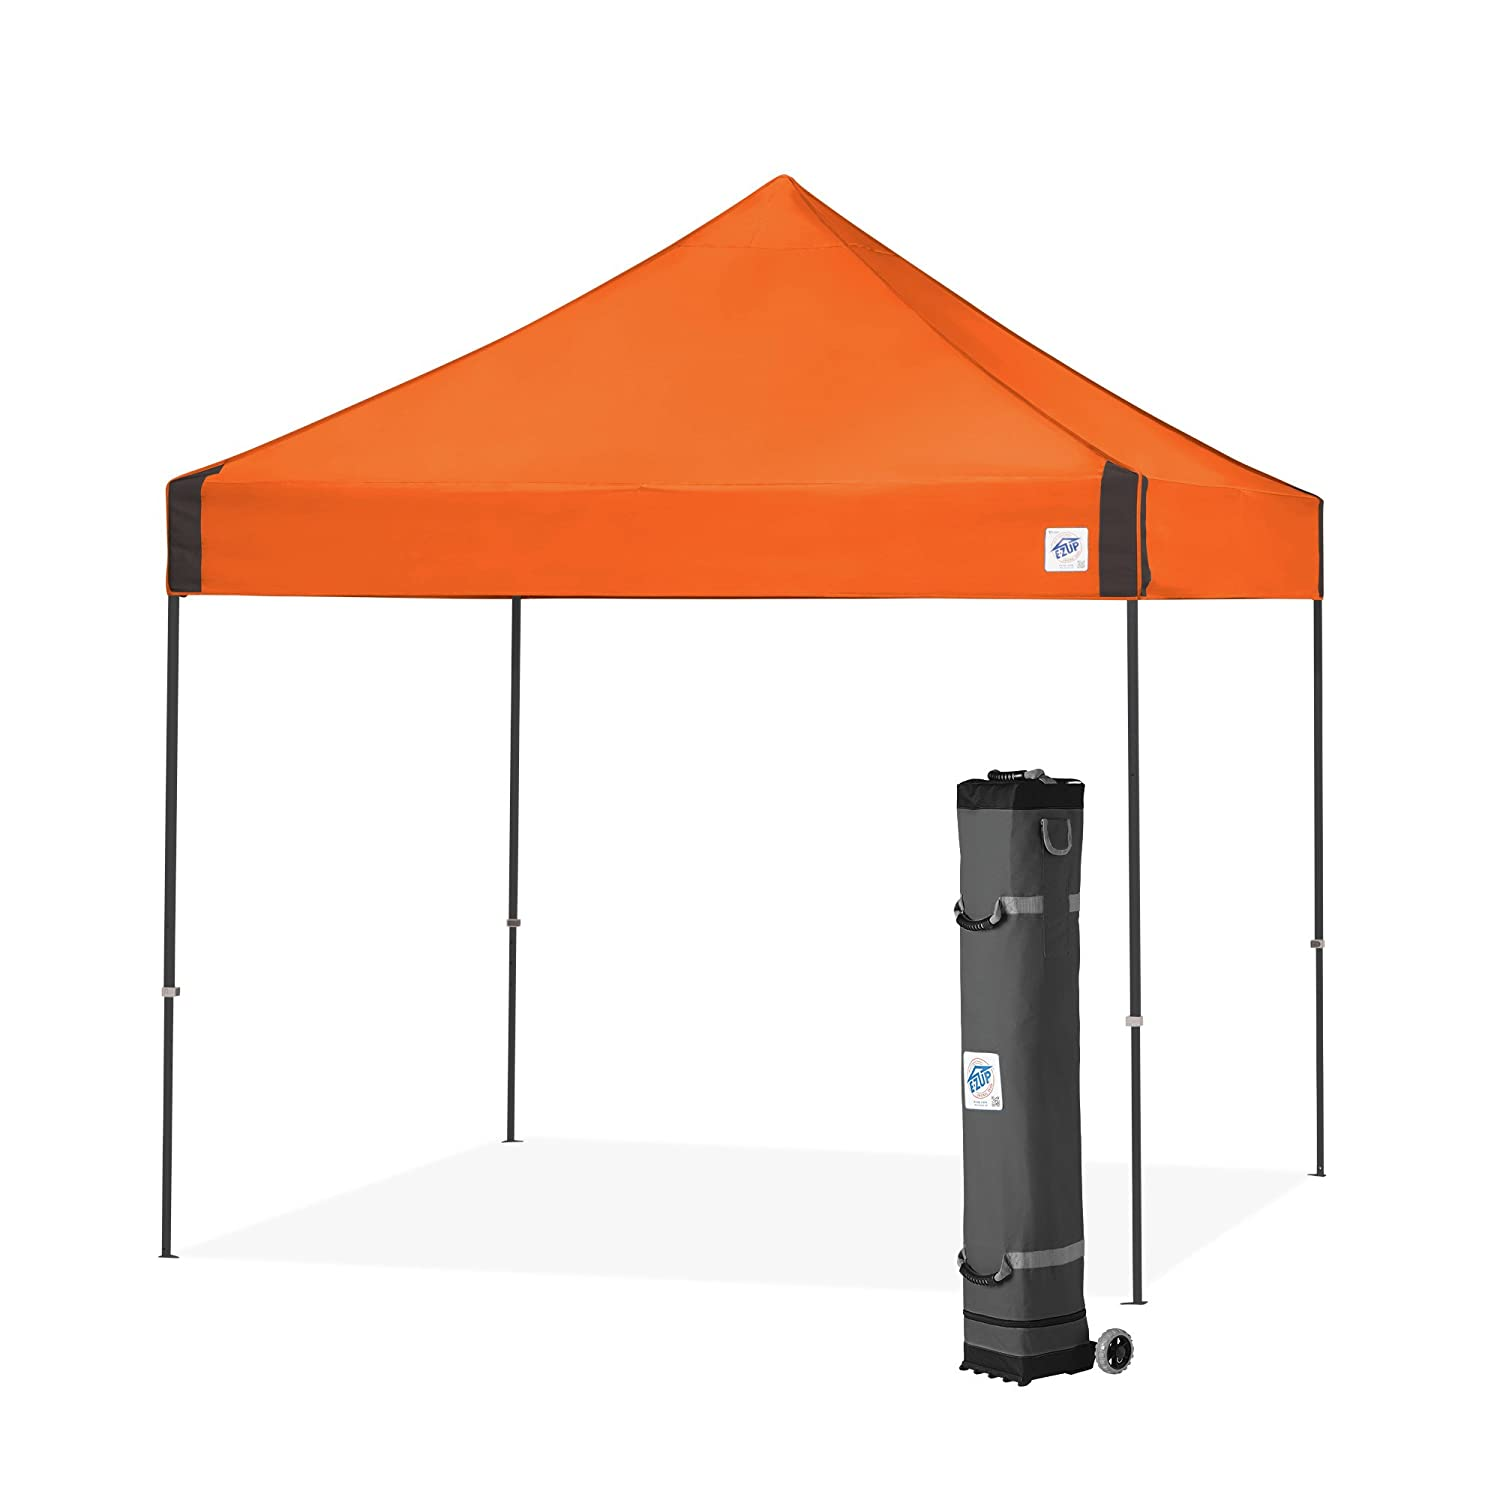 Amazon.com : E-Z UP Vantage Instant Shelter Canopy, 10 by 10\', Steel ...